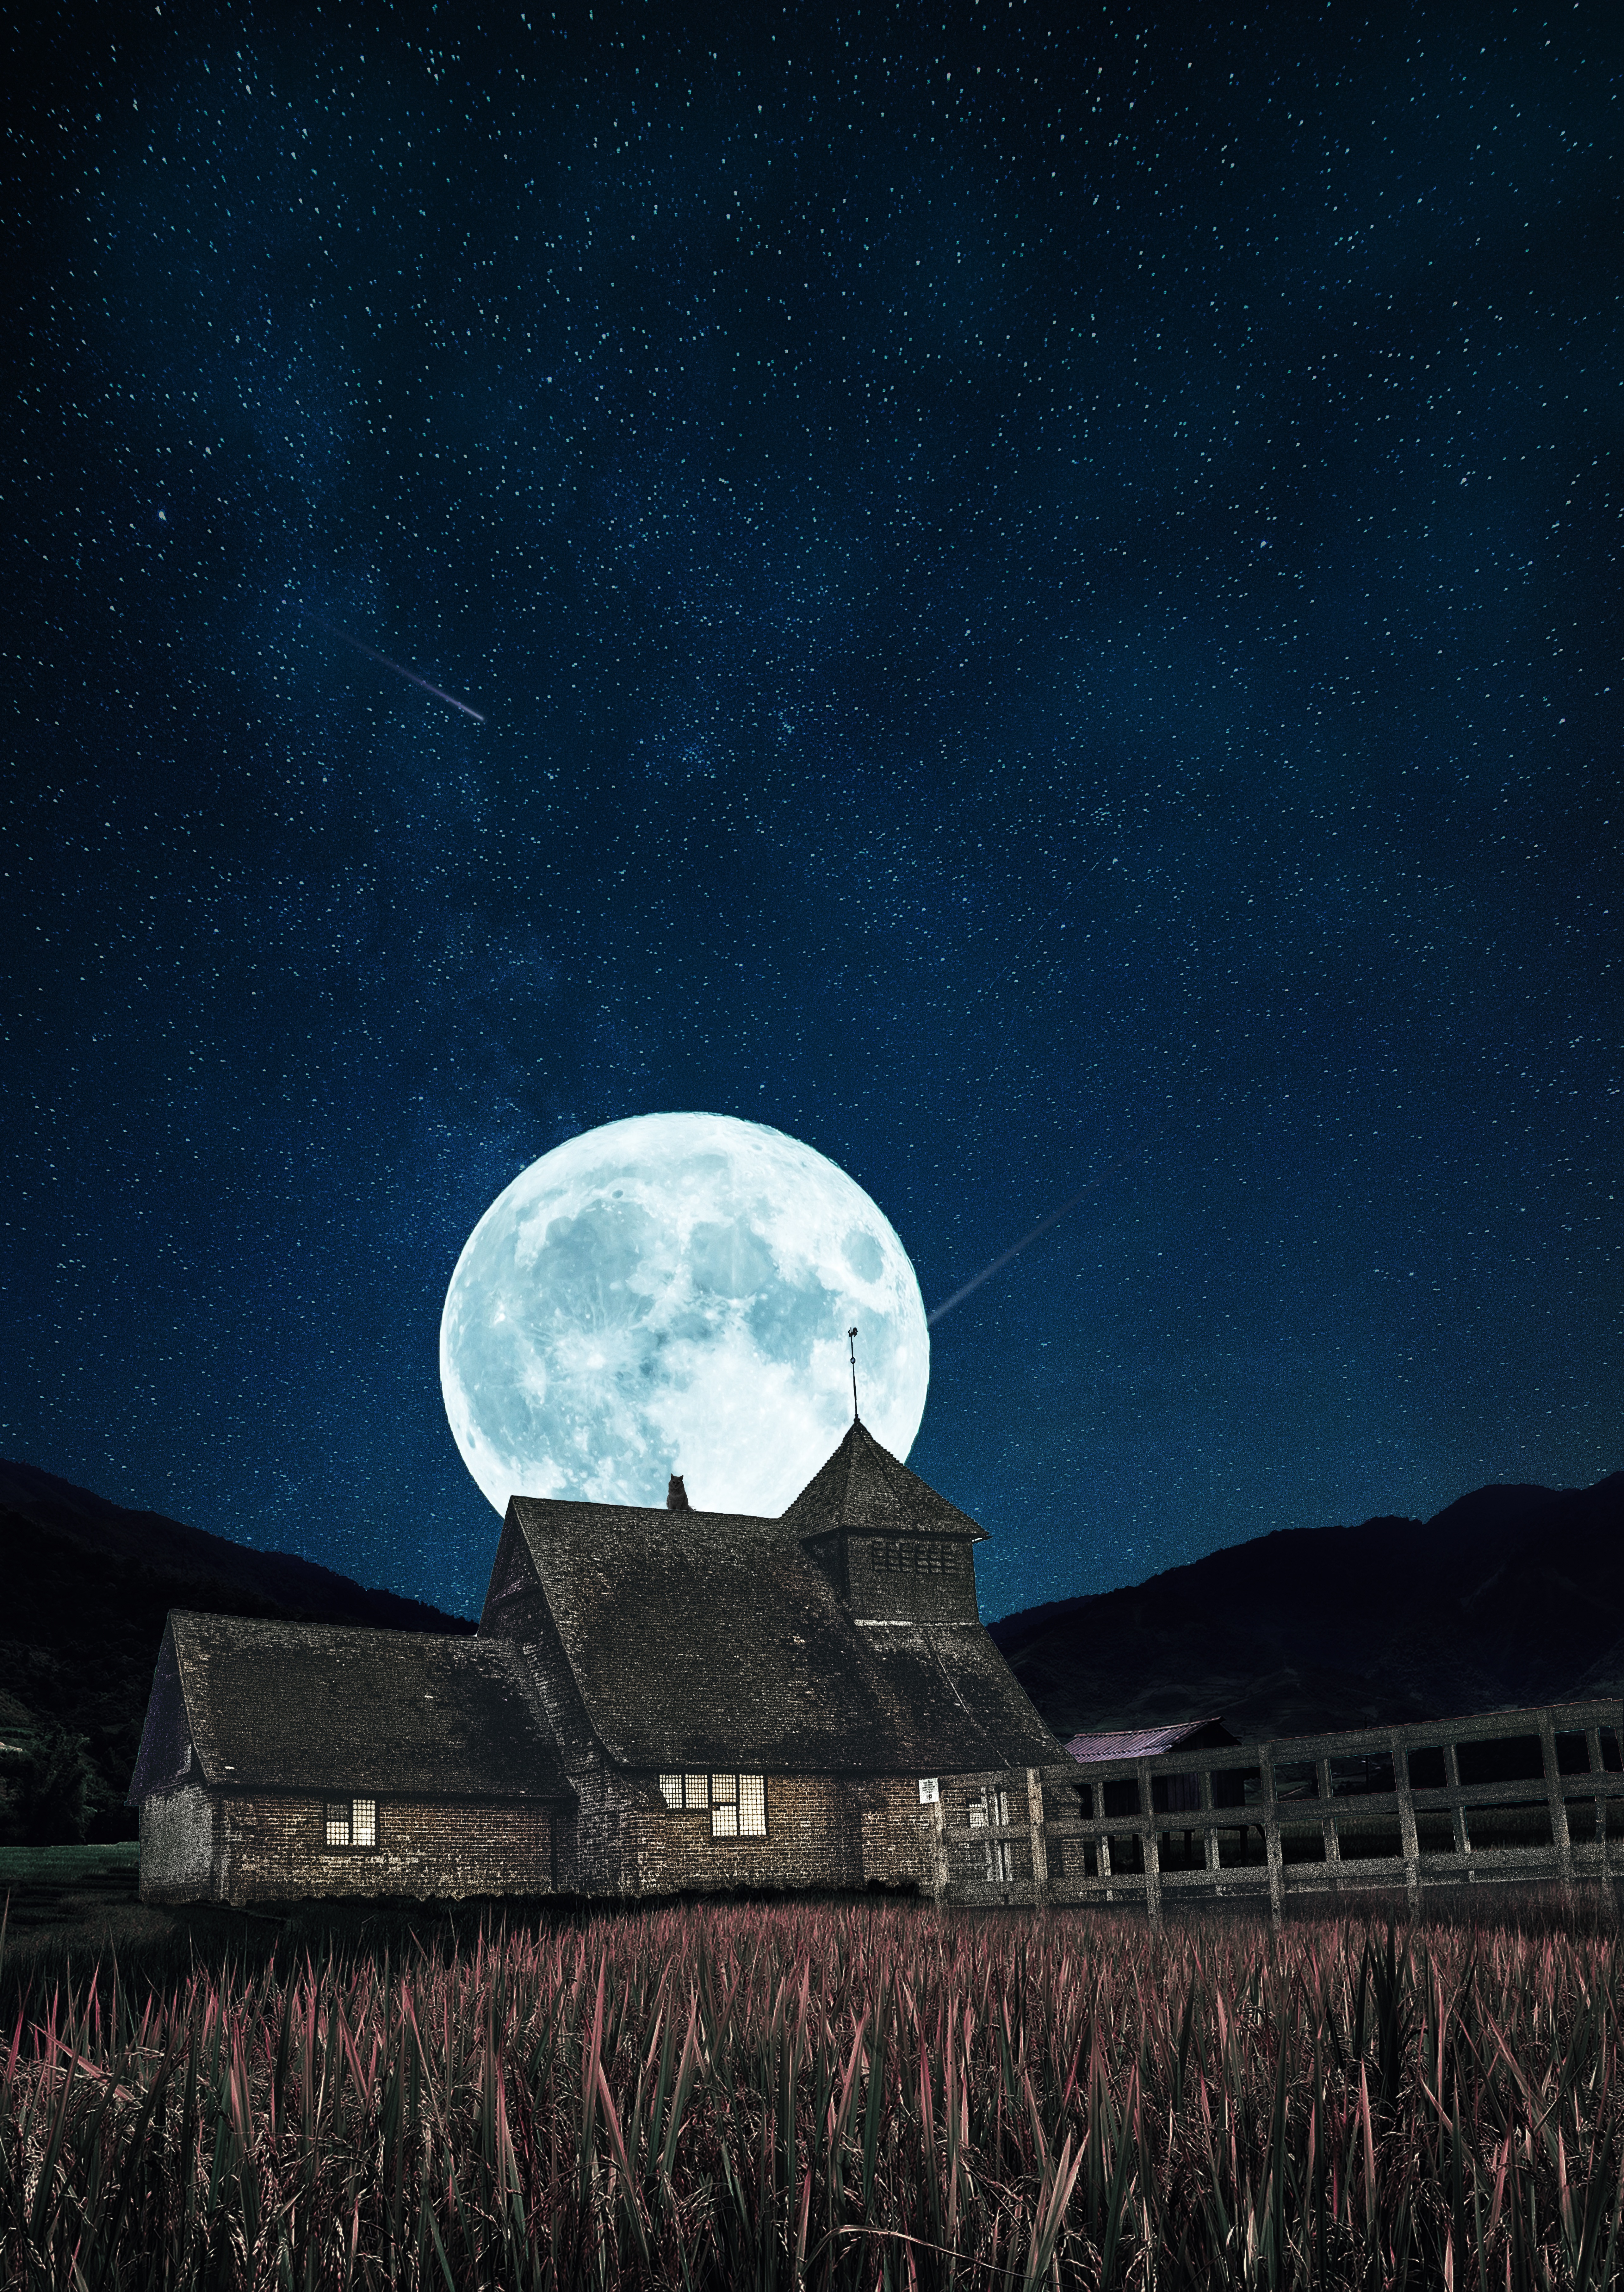 121845 download wallpaper Night, Moon, Building, Miscellanea, Miscellaneous, Starry Sky, Full Moon screensavers and pictures for free